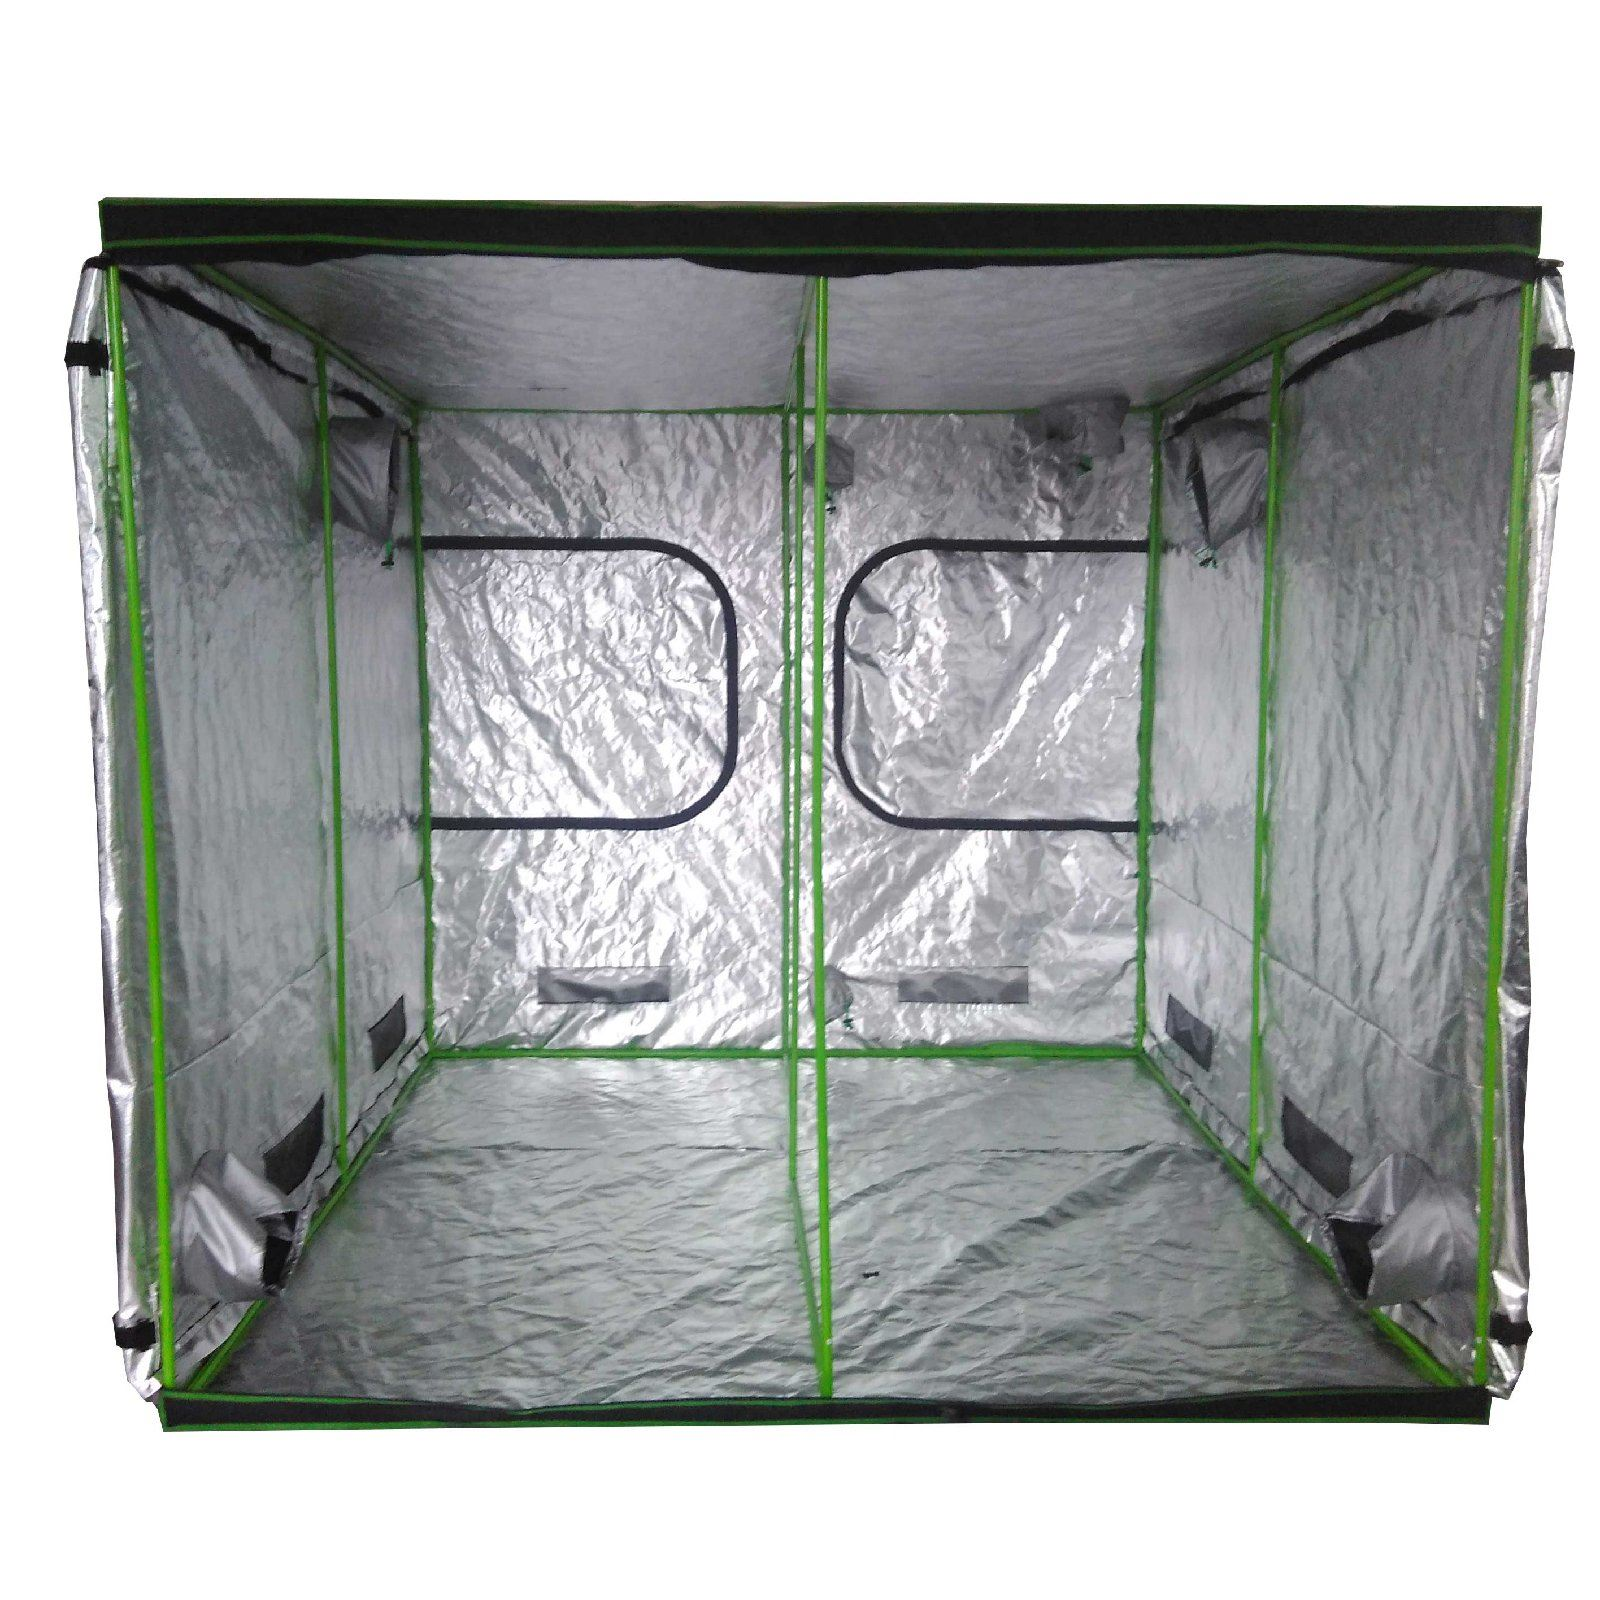 Details about EverGrow Pro 5x5 FT Hydroponic Grow Tent Grow Light Vent Kit  1000W HPS Ballast